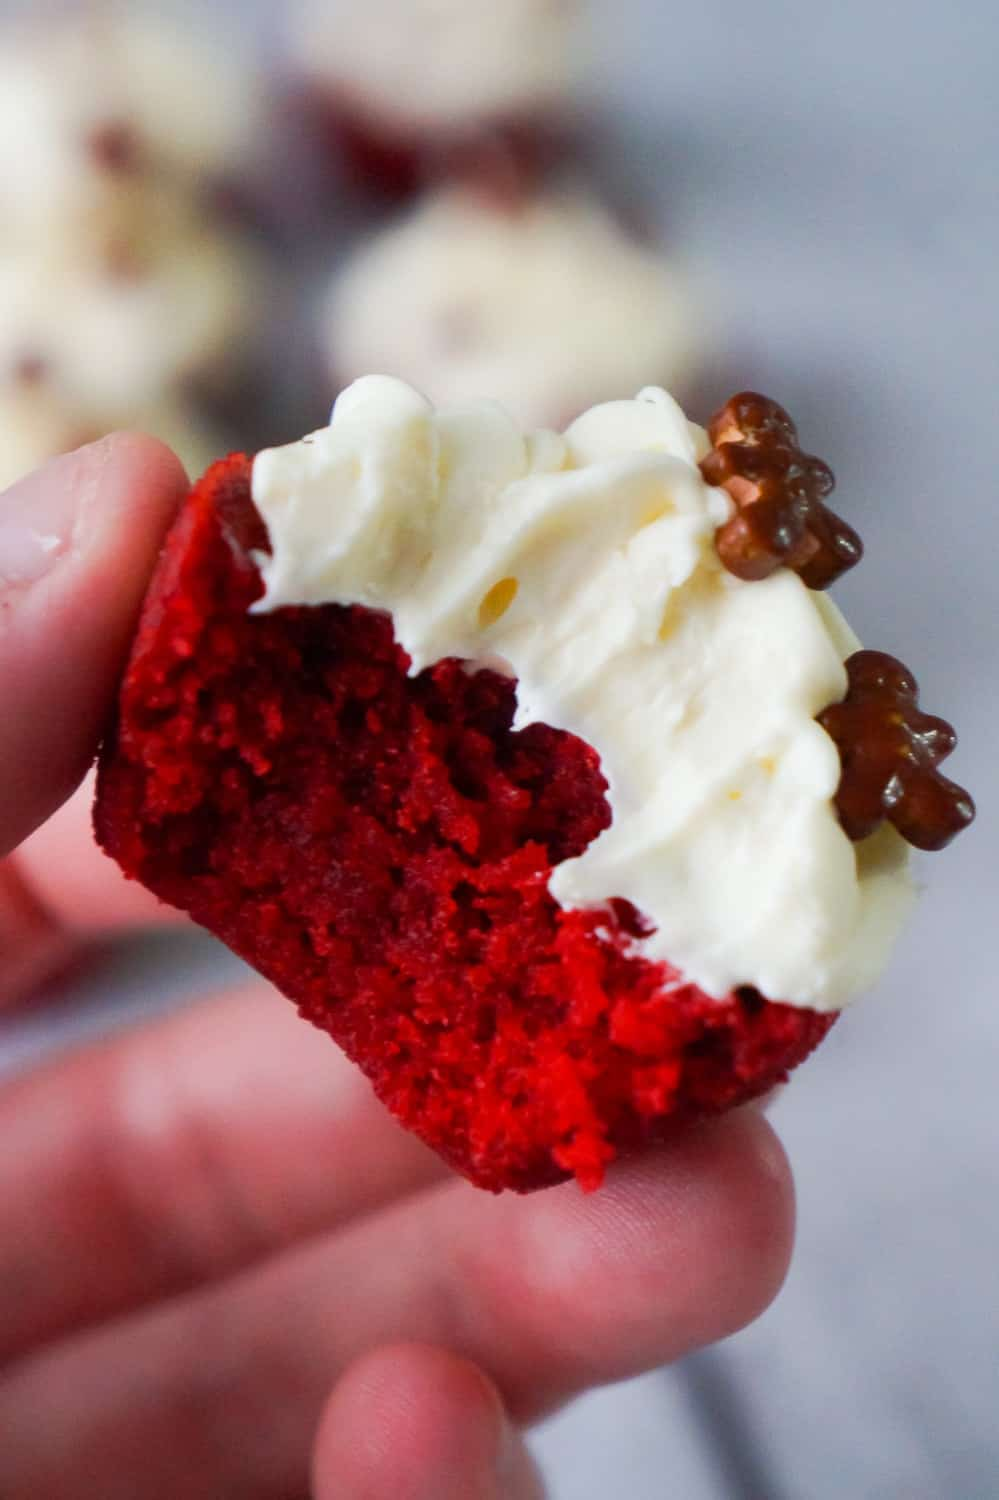 Red Velvet Brownie Bites are delicious mini desserts perfect for the holidays. These bite sized brownies are baked in mini muffin tins and topped with cream cheese frosting.